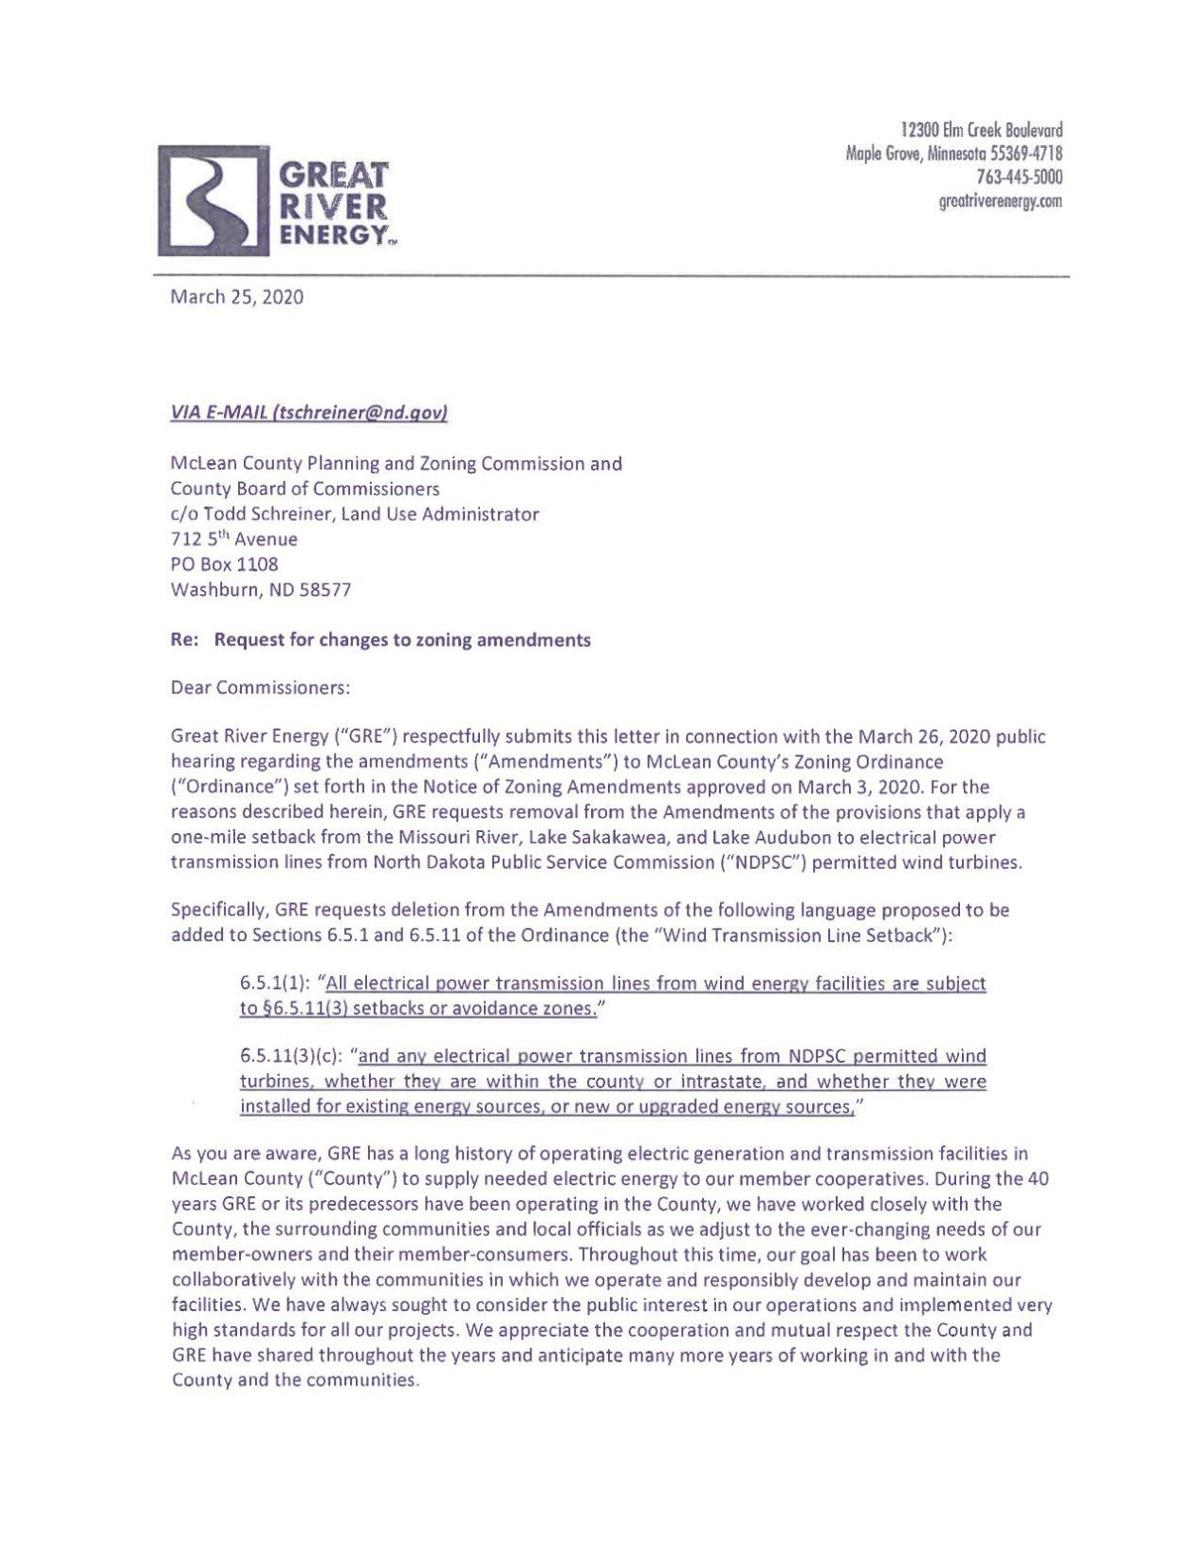 GRE letter to McLean County